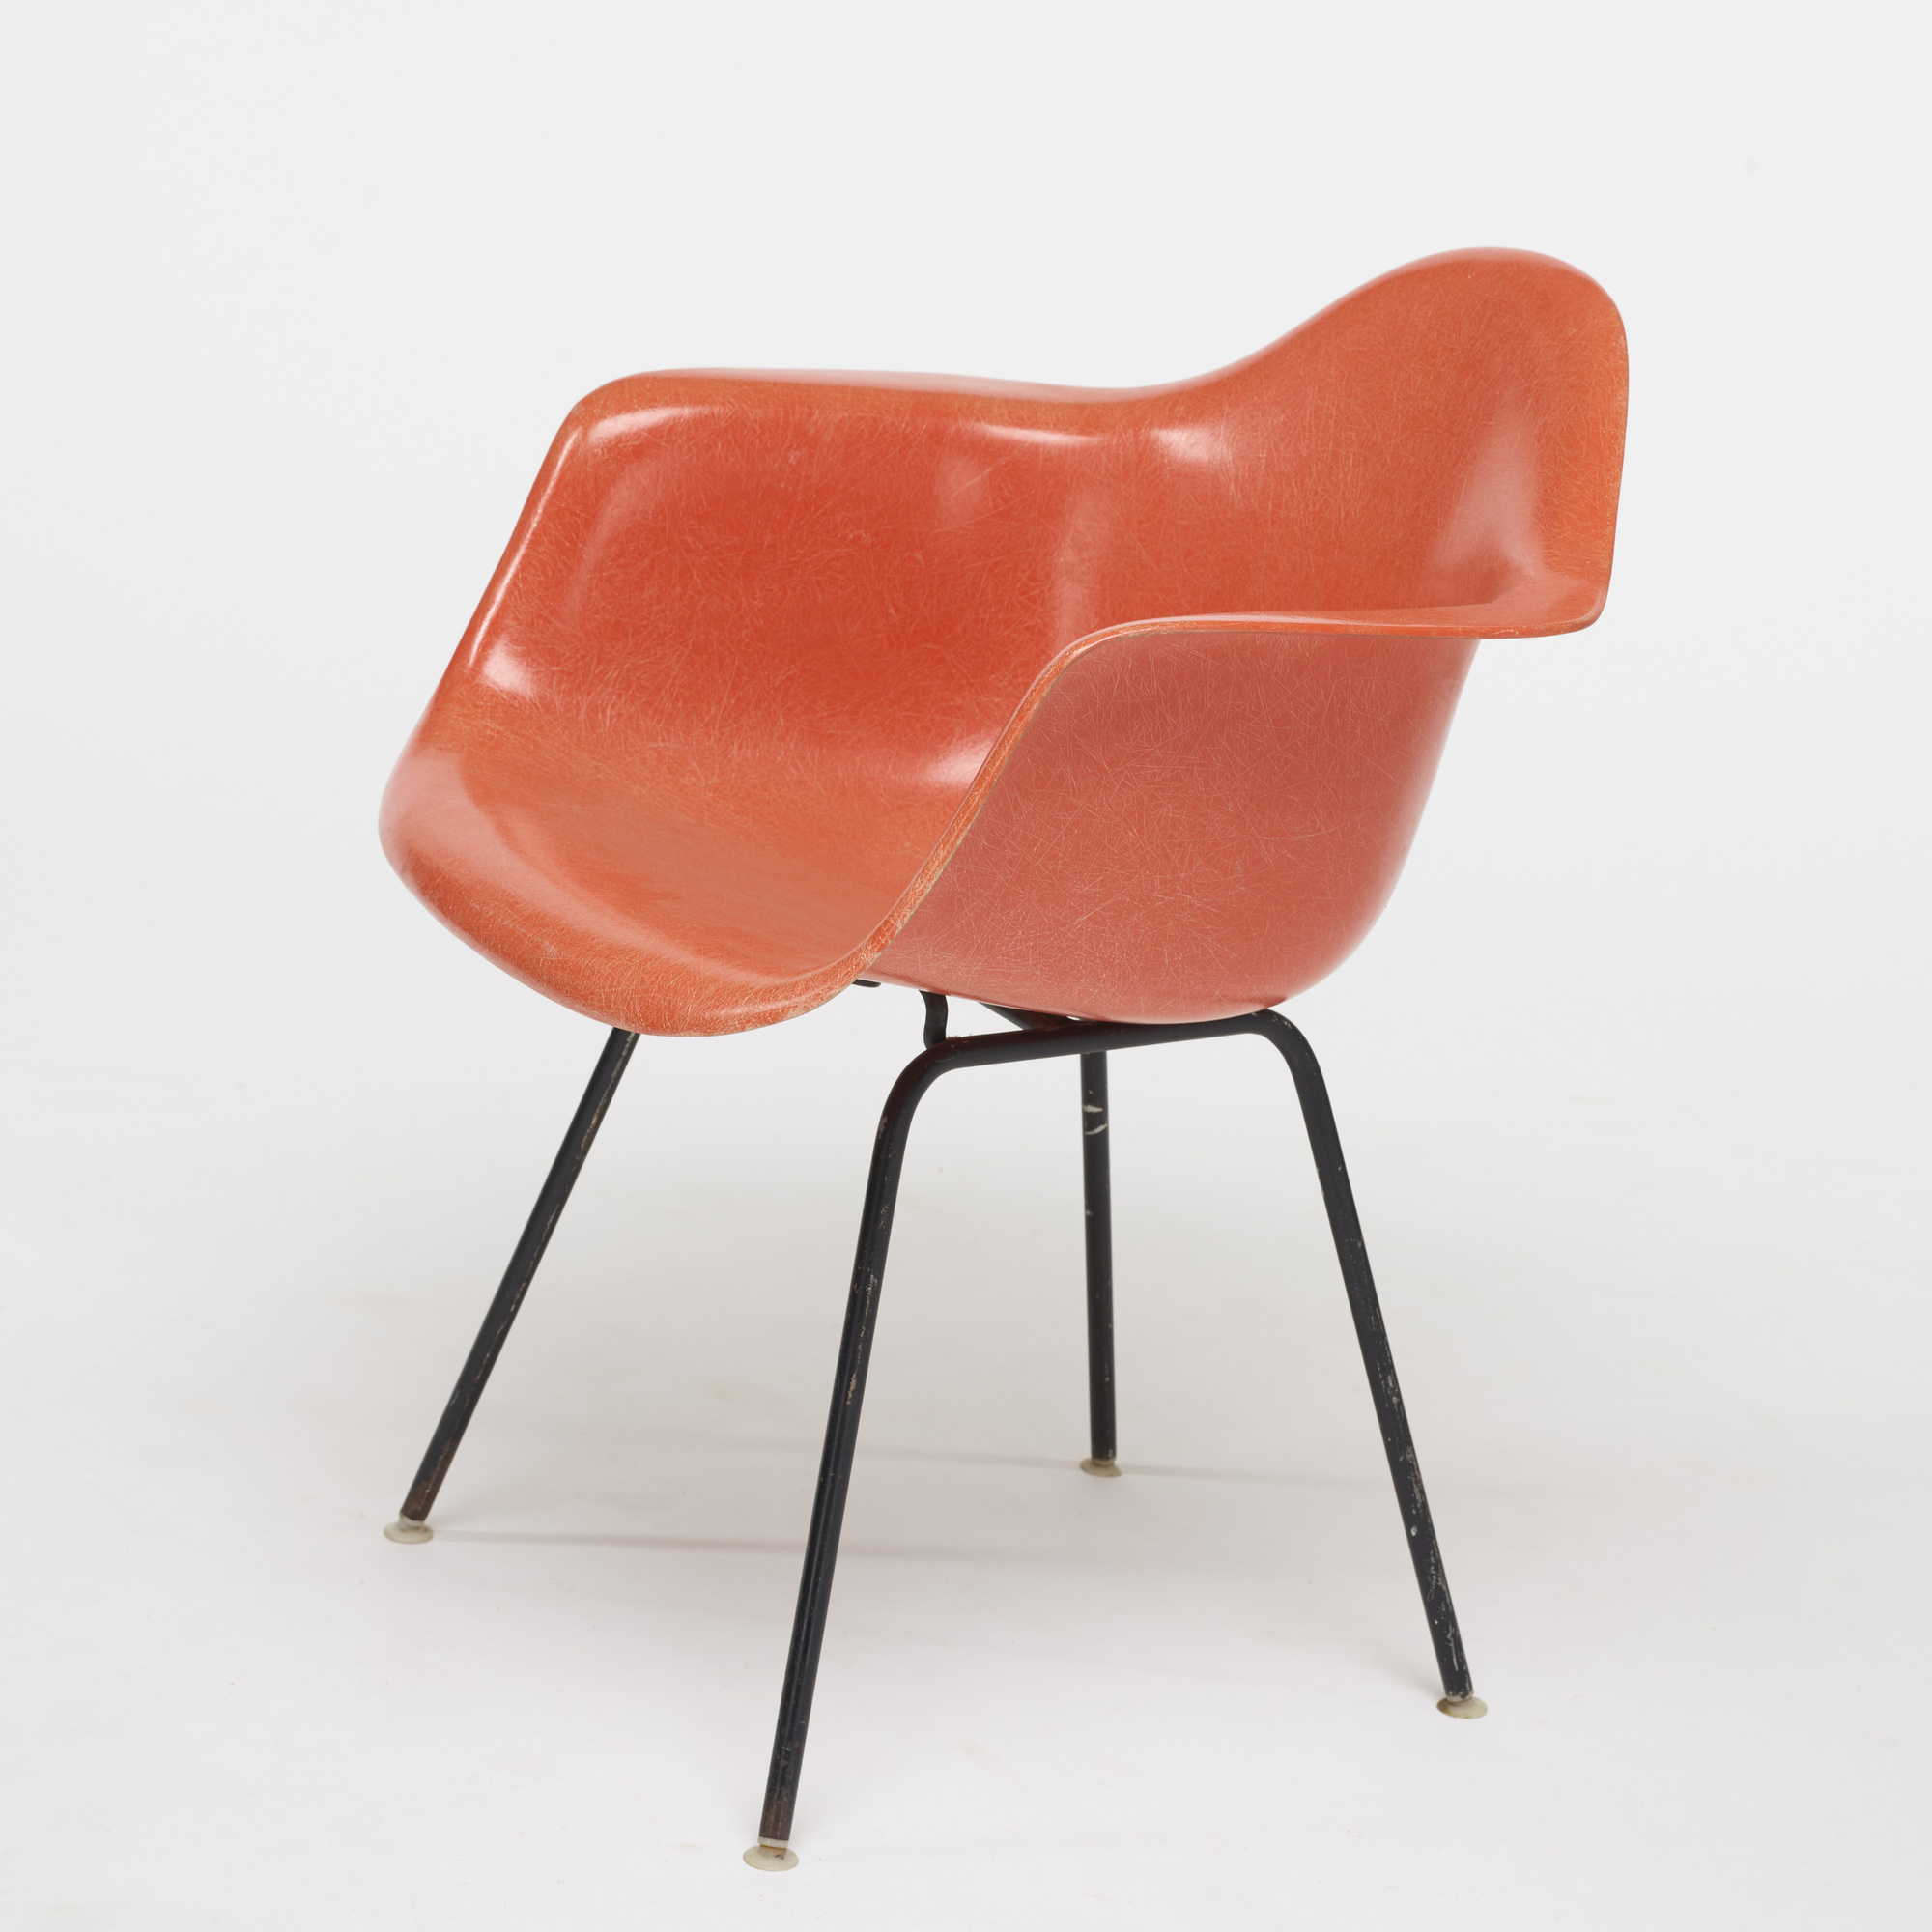 263: Charles and Ray Eames / DAXs, pair (3 of 3)